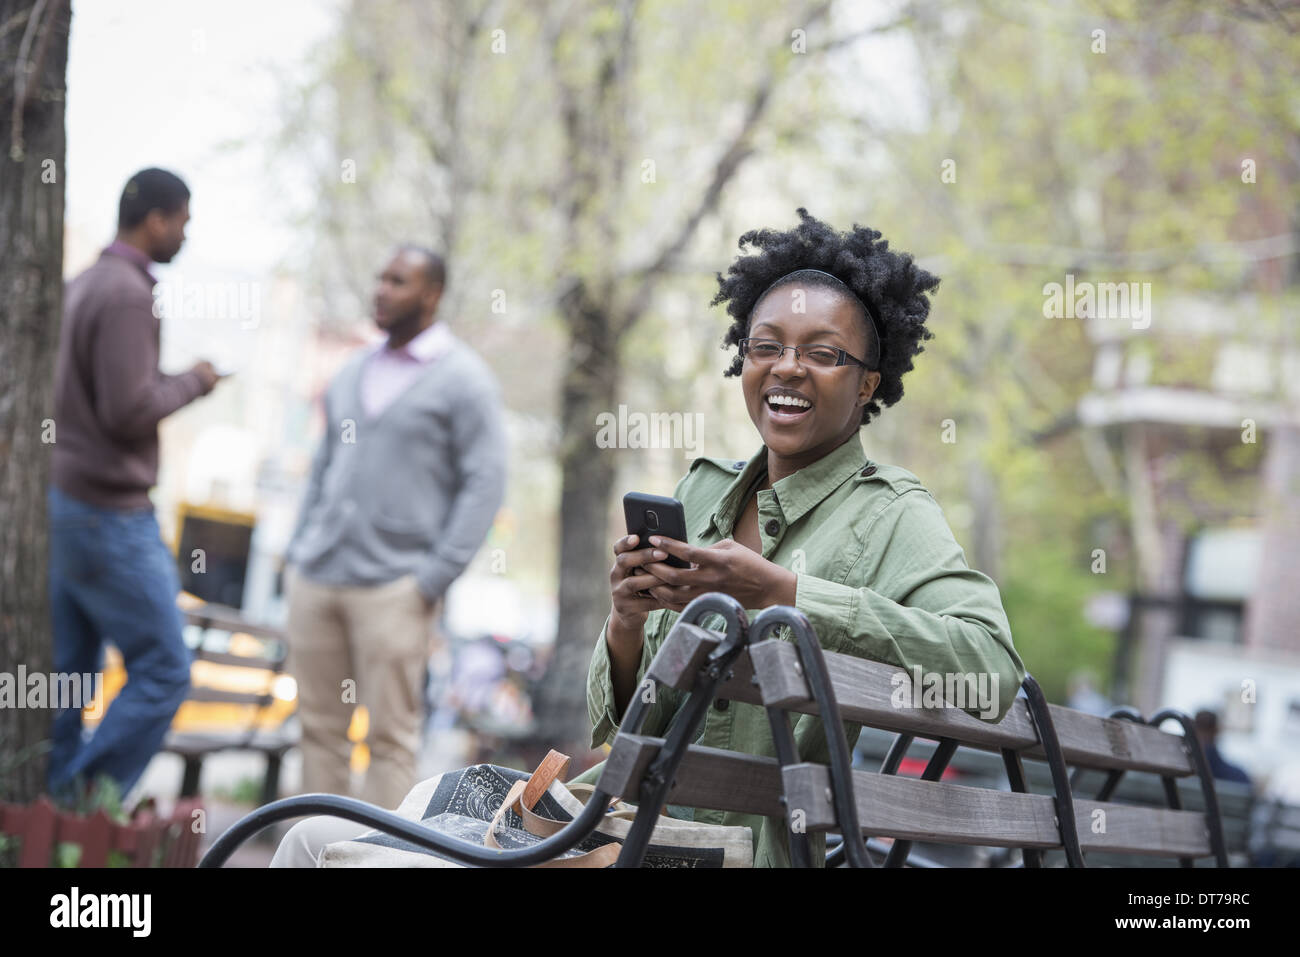 A woman on a bench checking her phone. Two men in the background. - Stock Image